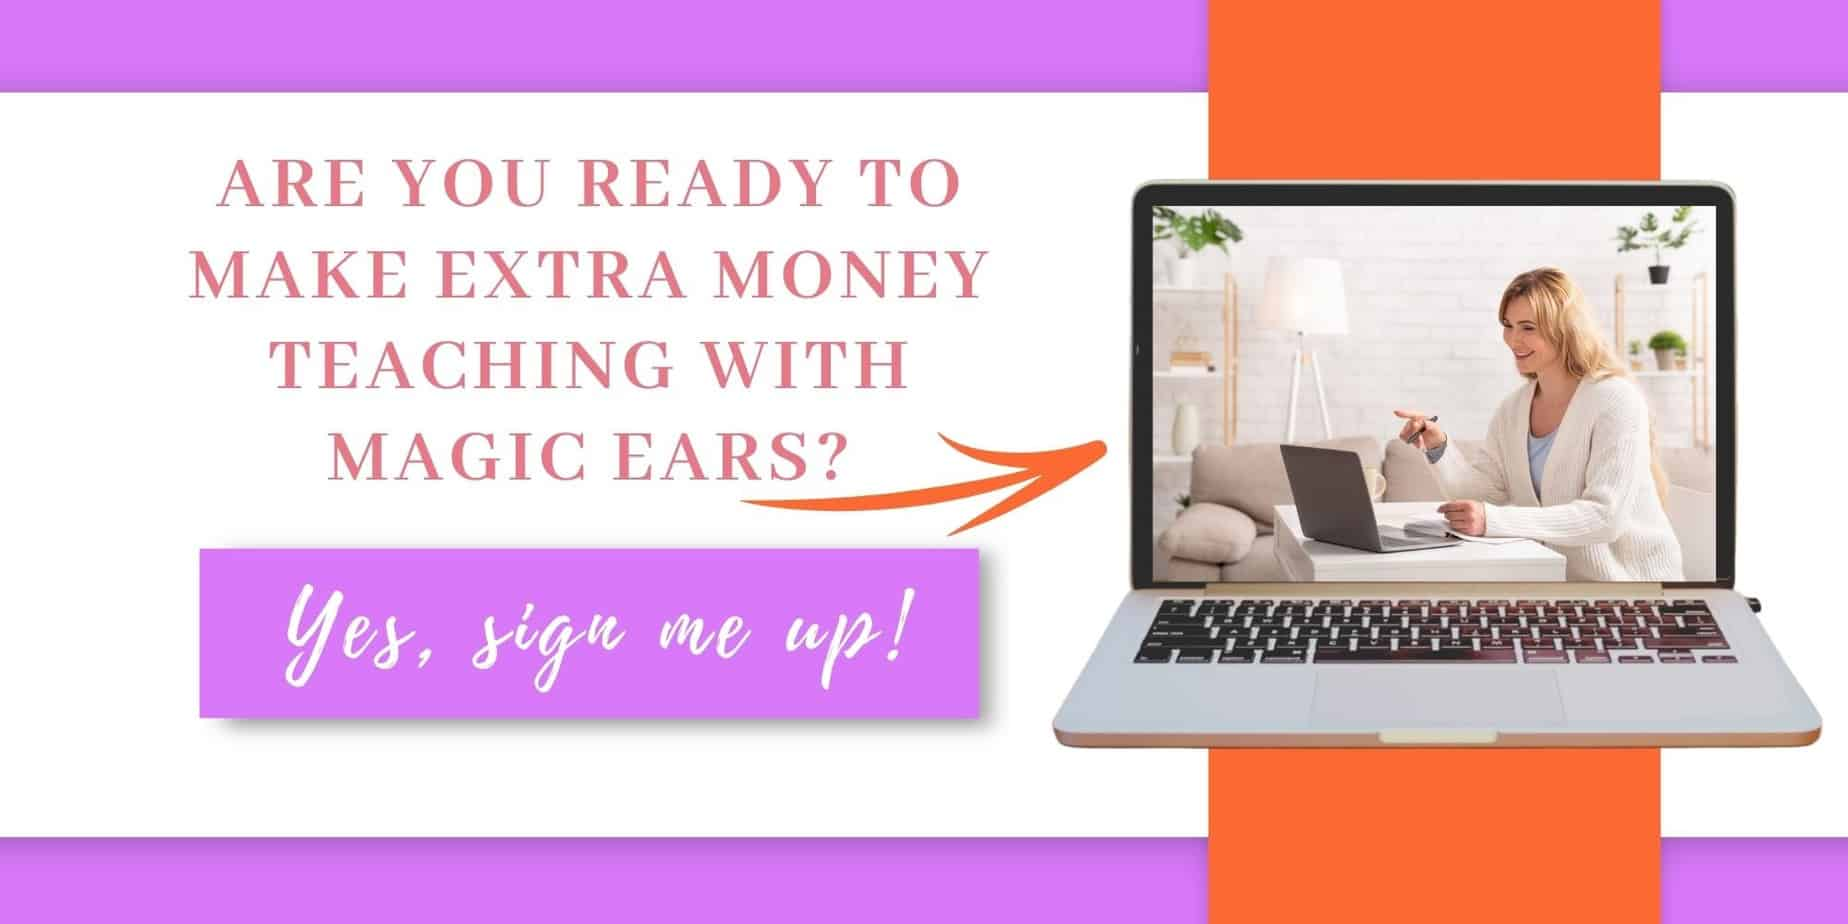 Want tips on teaching English online with Magic Ears? See how this single-mom of 2 earns $26 per hour for Magic Ears. This Magic Ears Review is just what you'll need to give you the confidence to give it a shot. #Workfromhomeideas #StayAtHomeMom